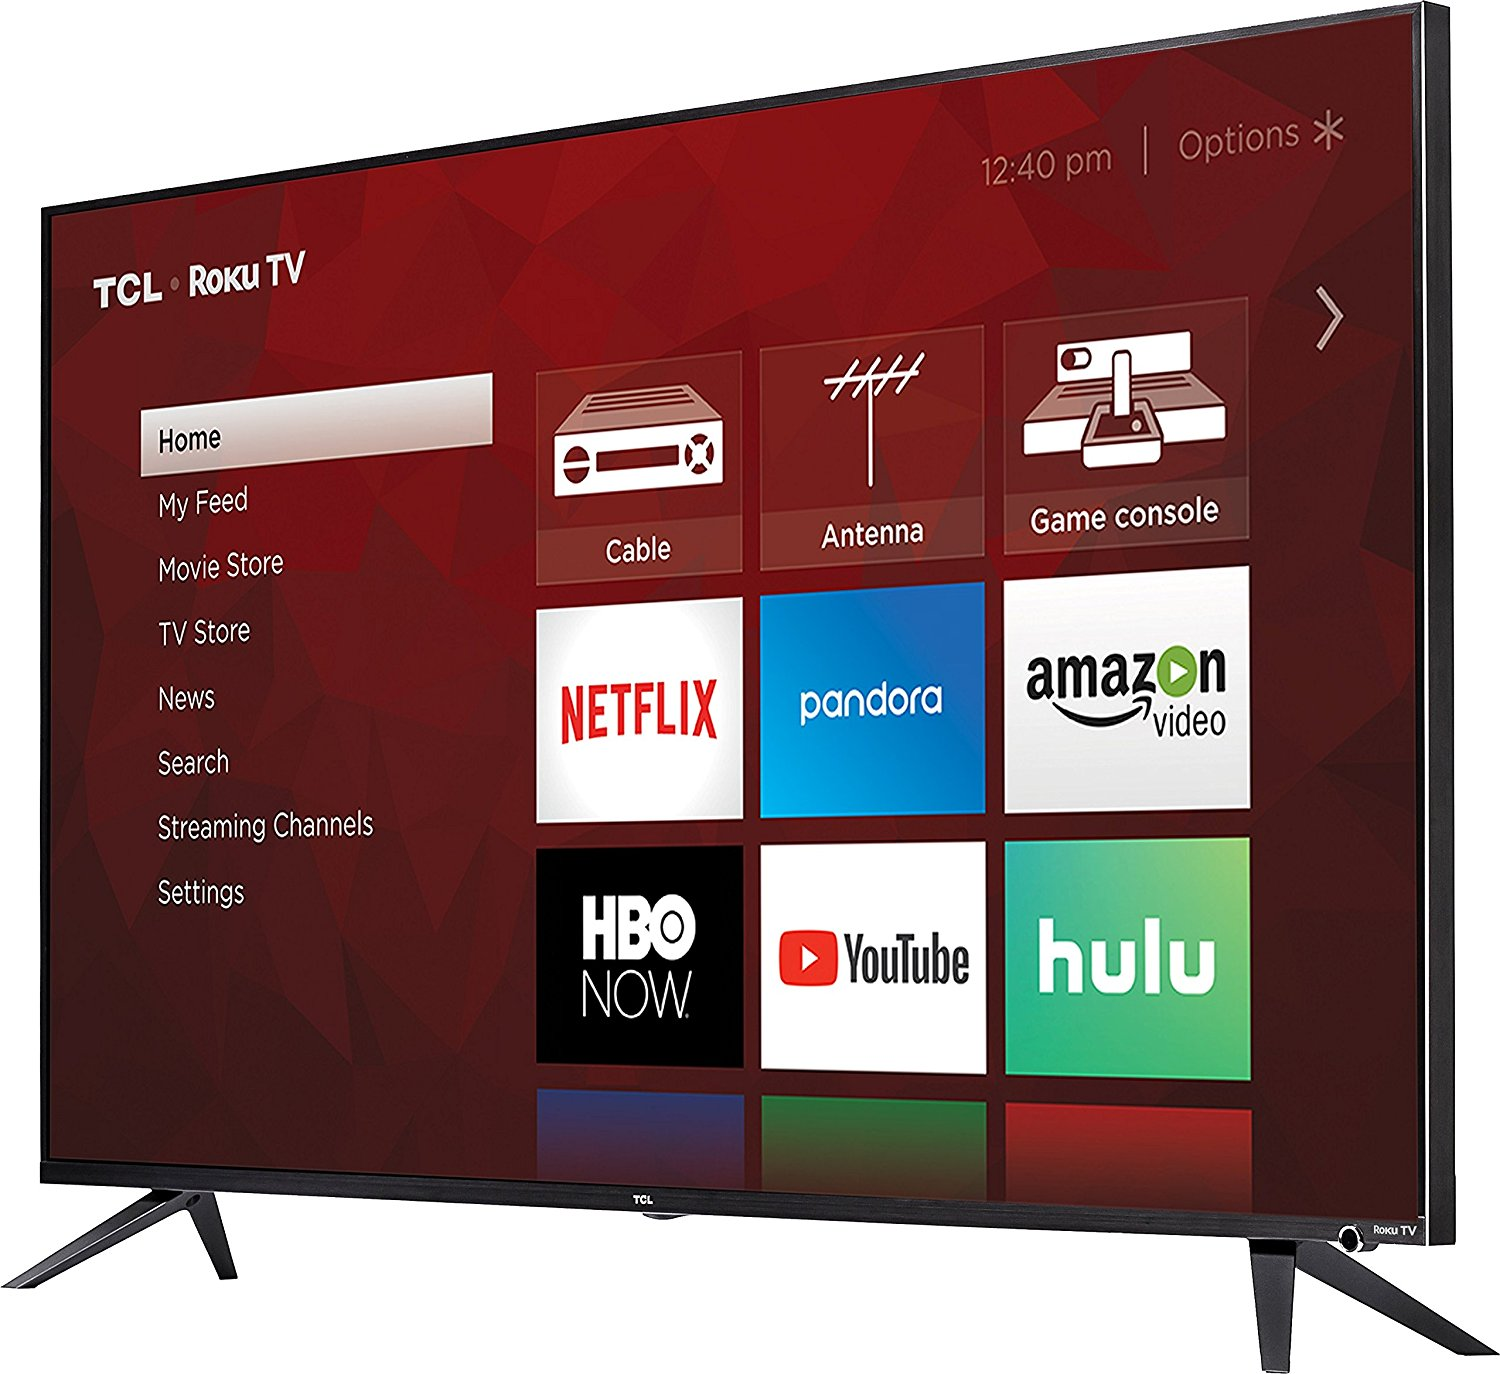 TCL's follow-up to last year's popular Roku 4K TVs starts at